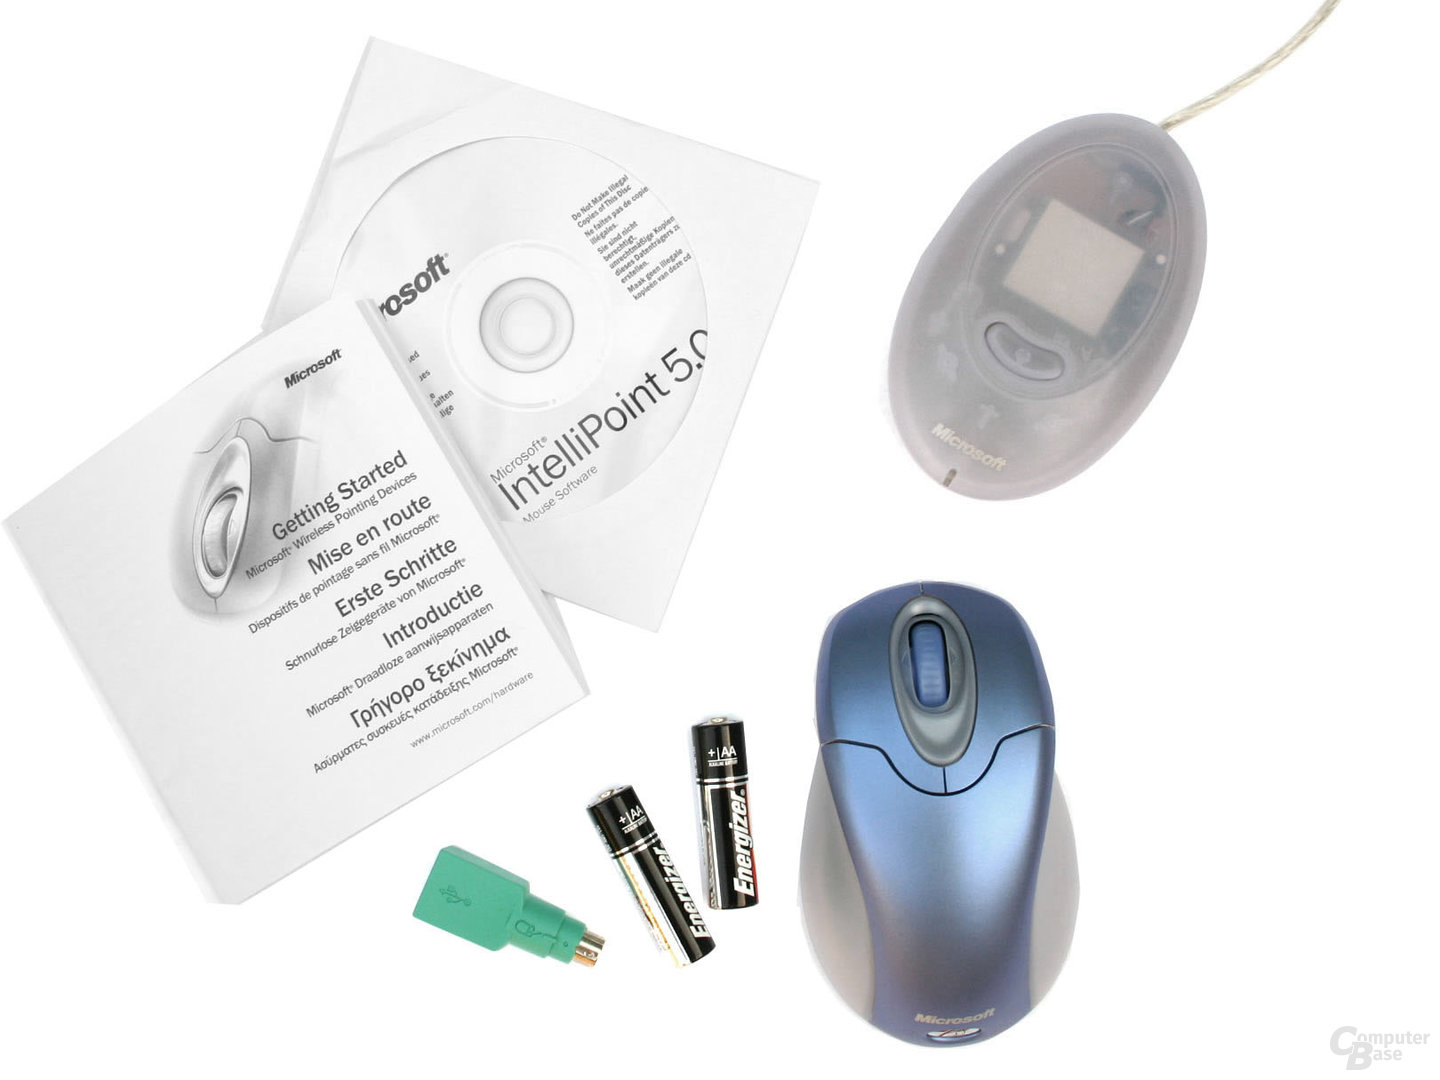 Lieferumfang Wireless Optical Mouse